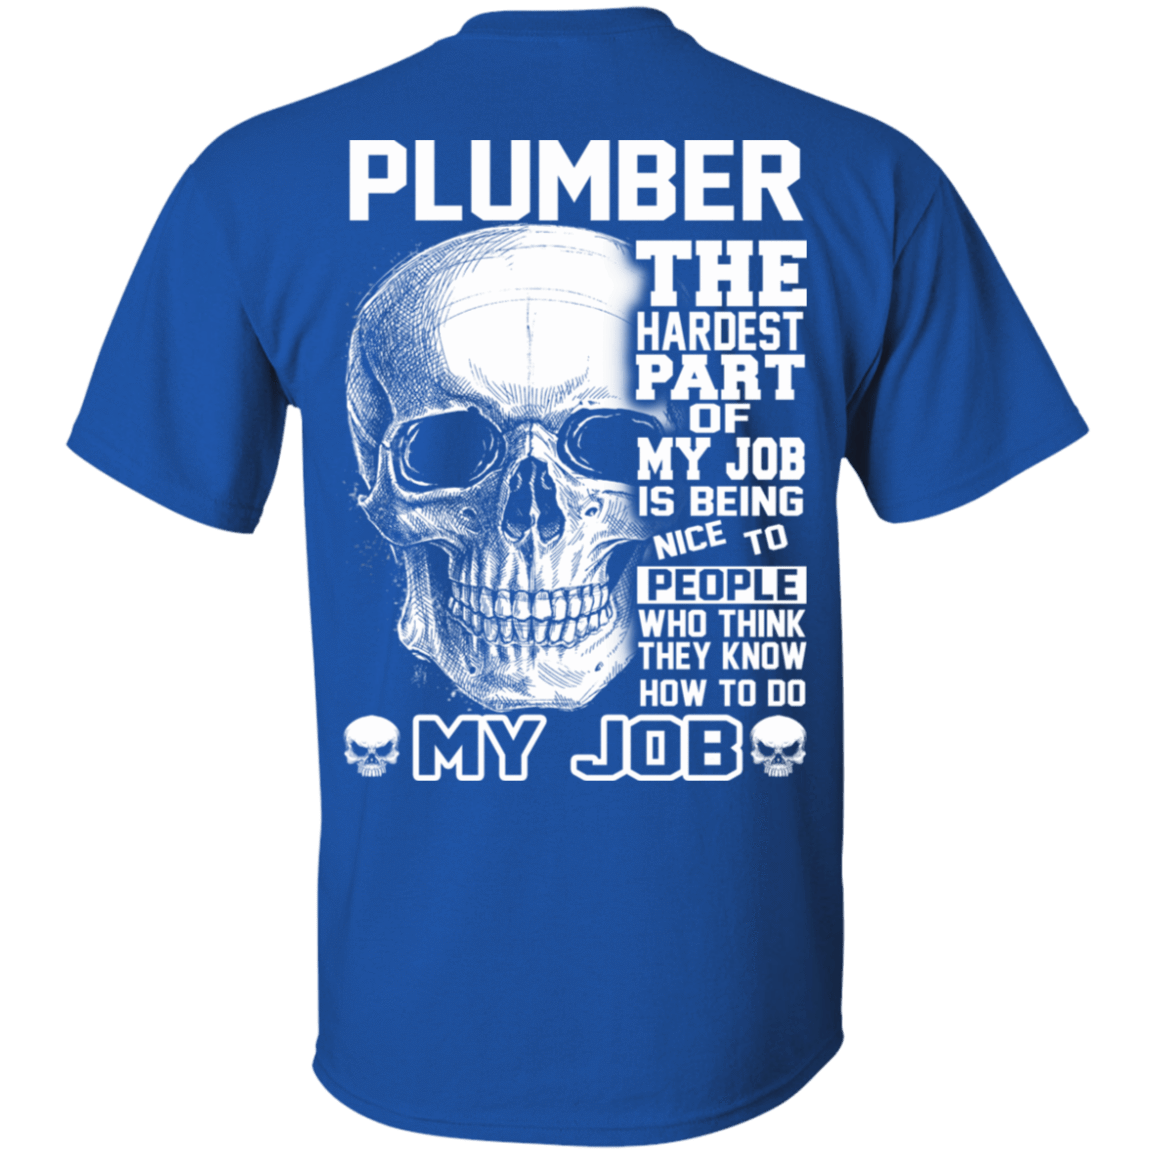 Plumber The Hardest Part Of My Job 22-110-72369941-249 - Tee Ript